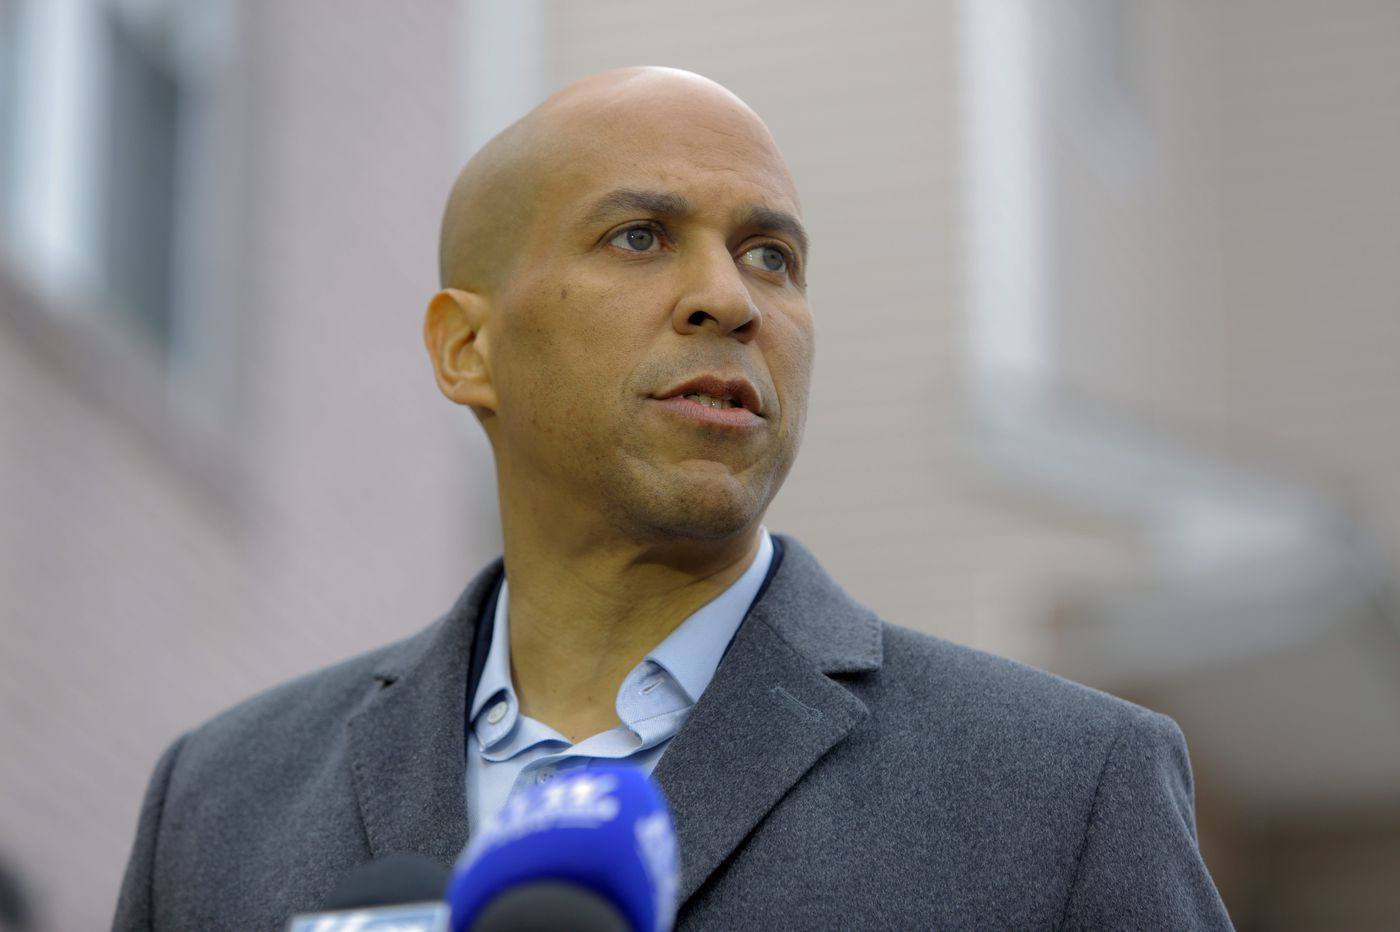 Cory Booker 2020: How he could win. And why he might not.